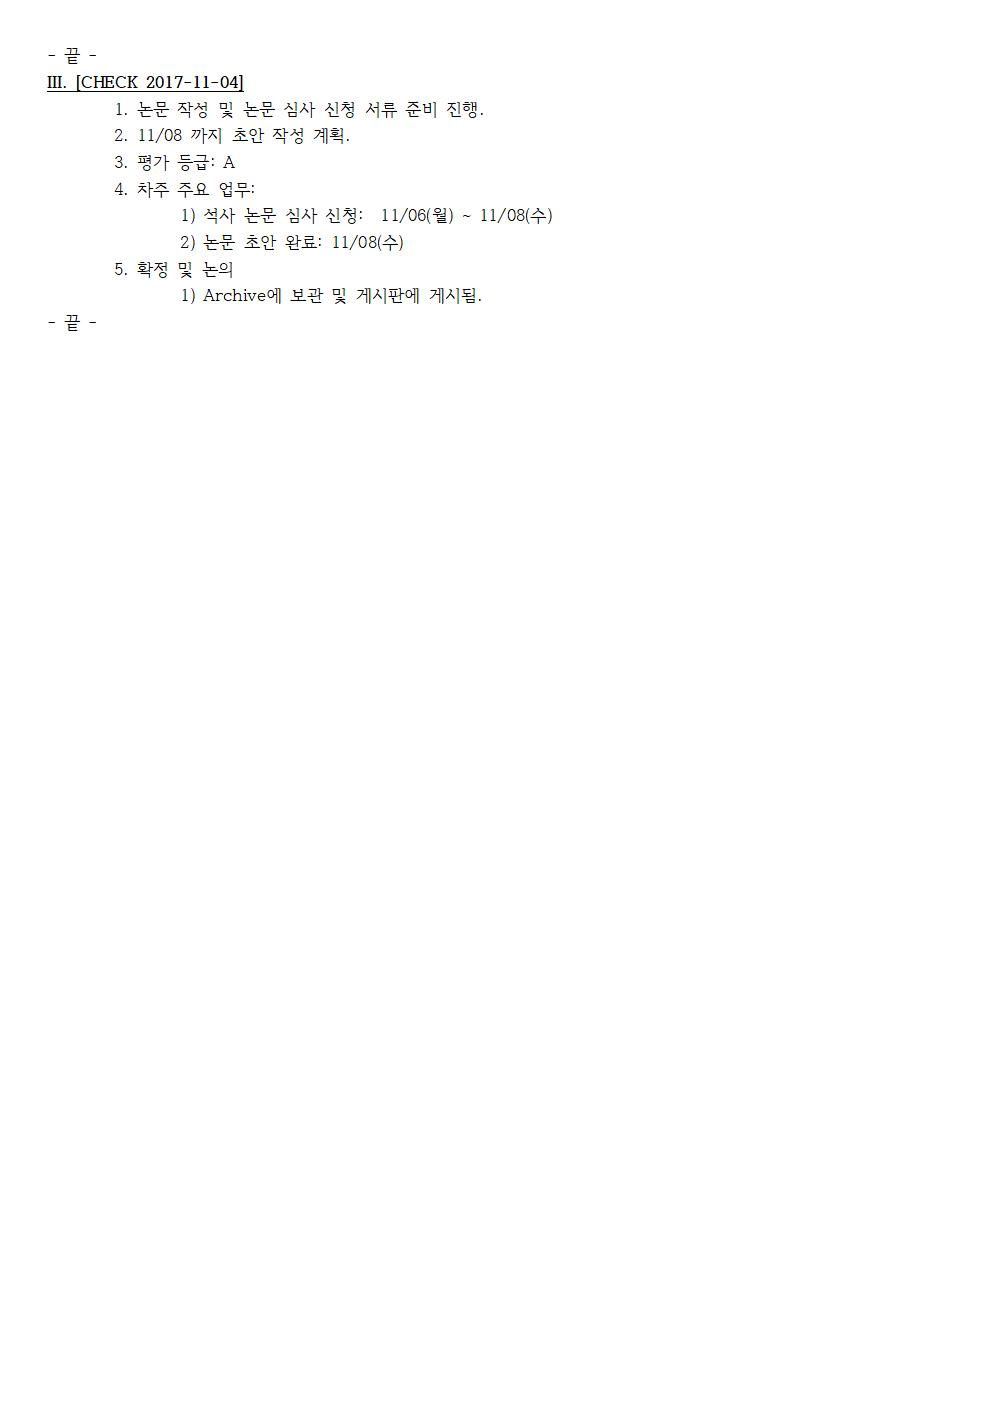 D-[17-100-PP-19]-[MS-G-Paper-JS]-[JS]-[2017-11-04]-[PLAN][DO][CHECK]002.jpg